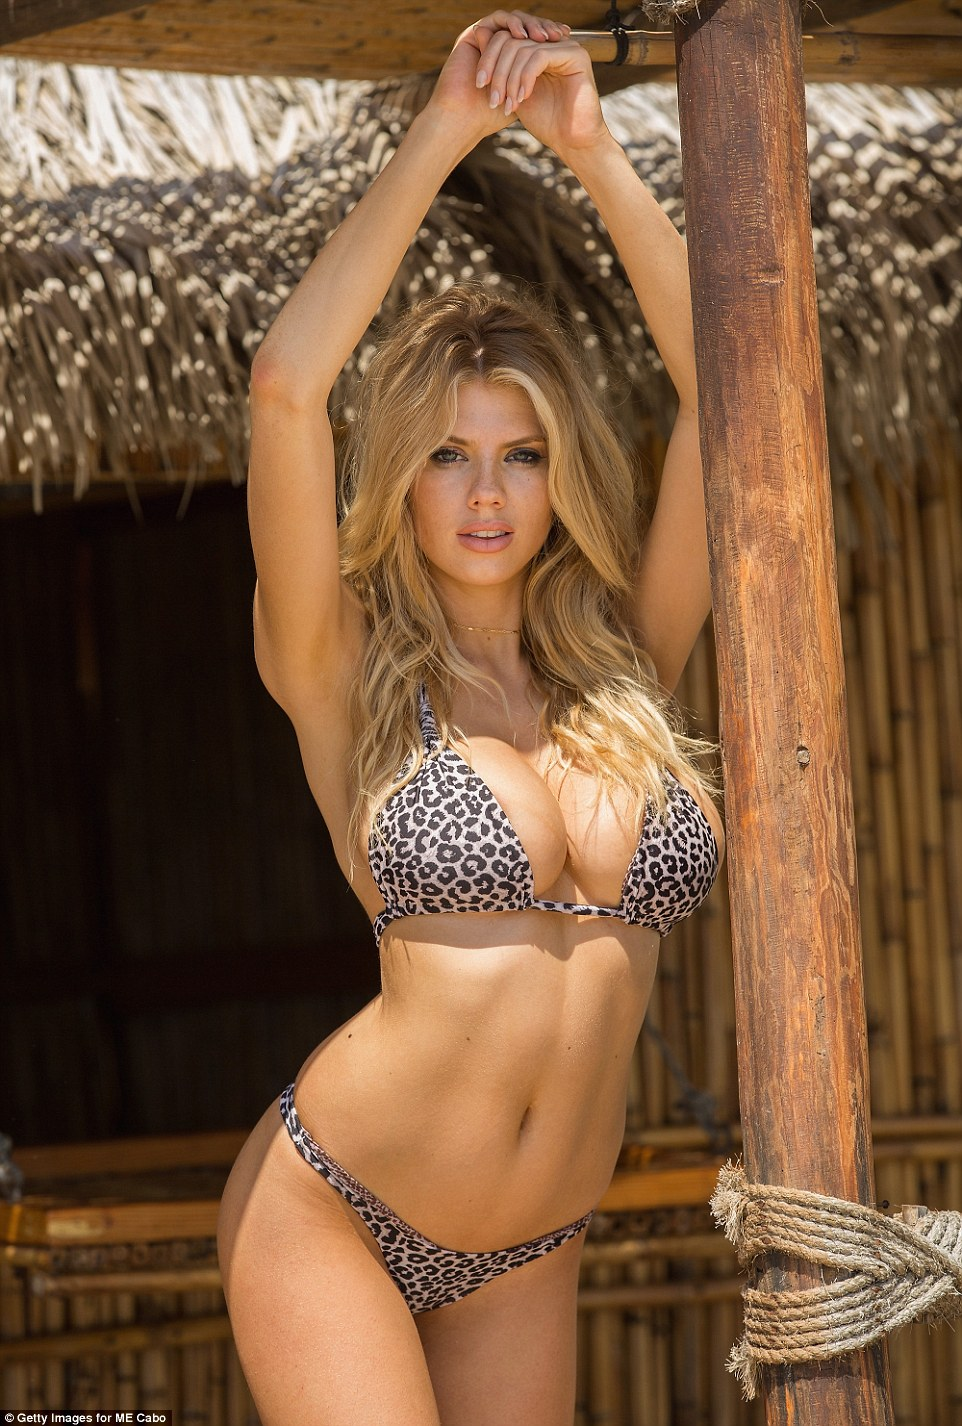 charlotte-mckinney-bikini-pics-are-so-hot-4